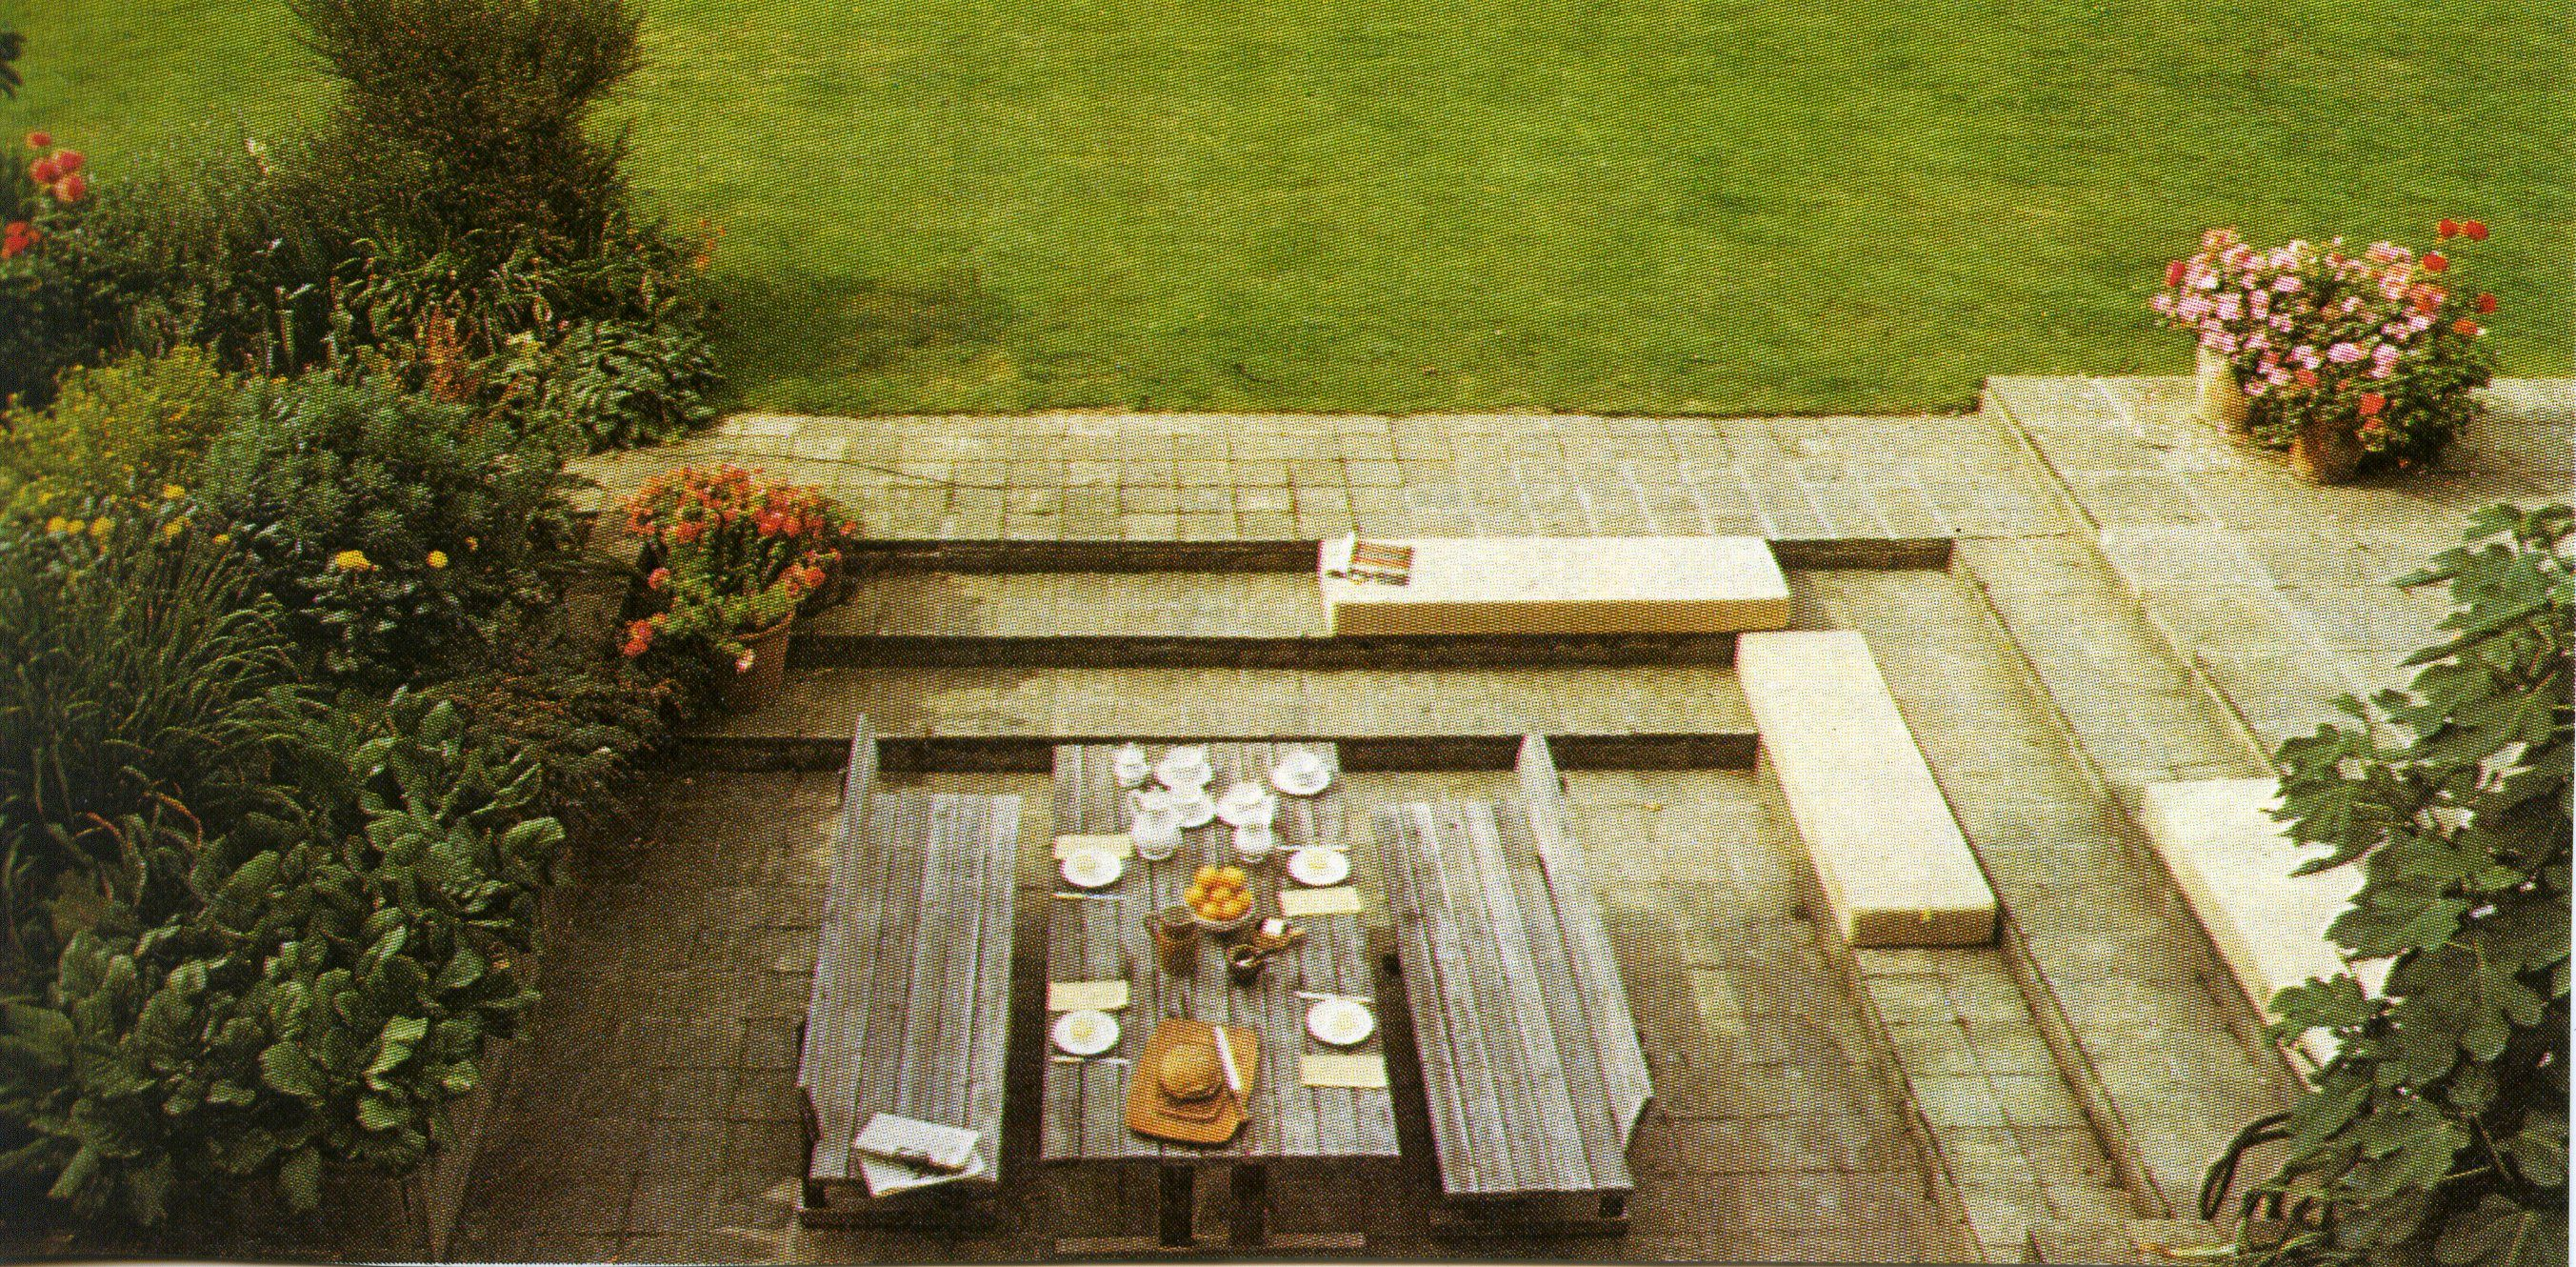 Rustic but streamlined outdoor eating.